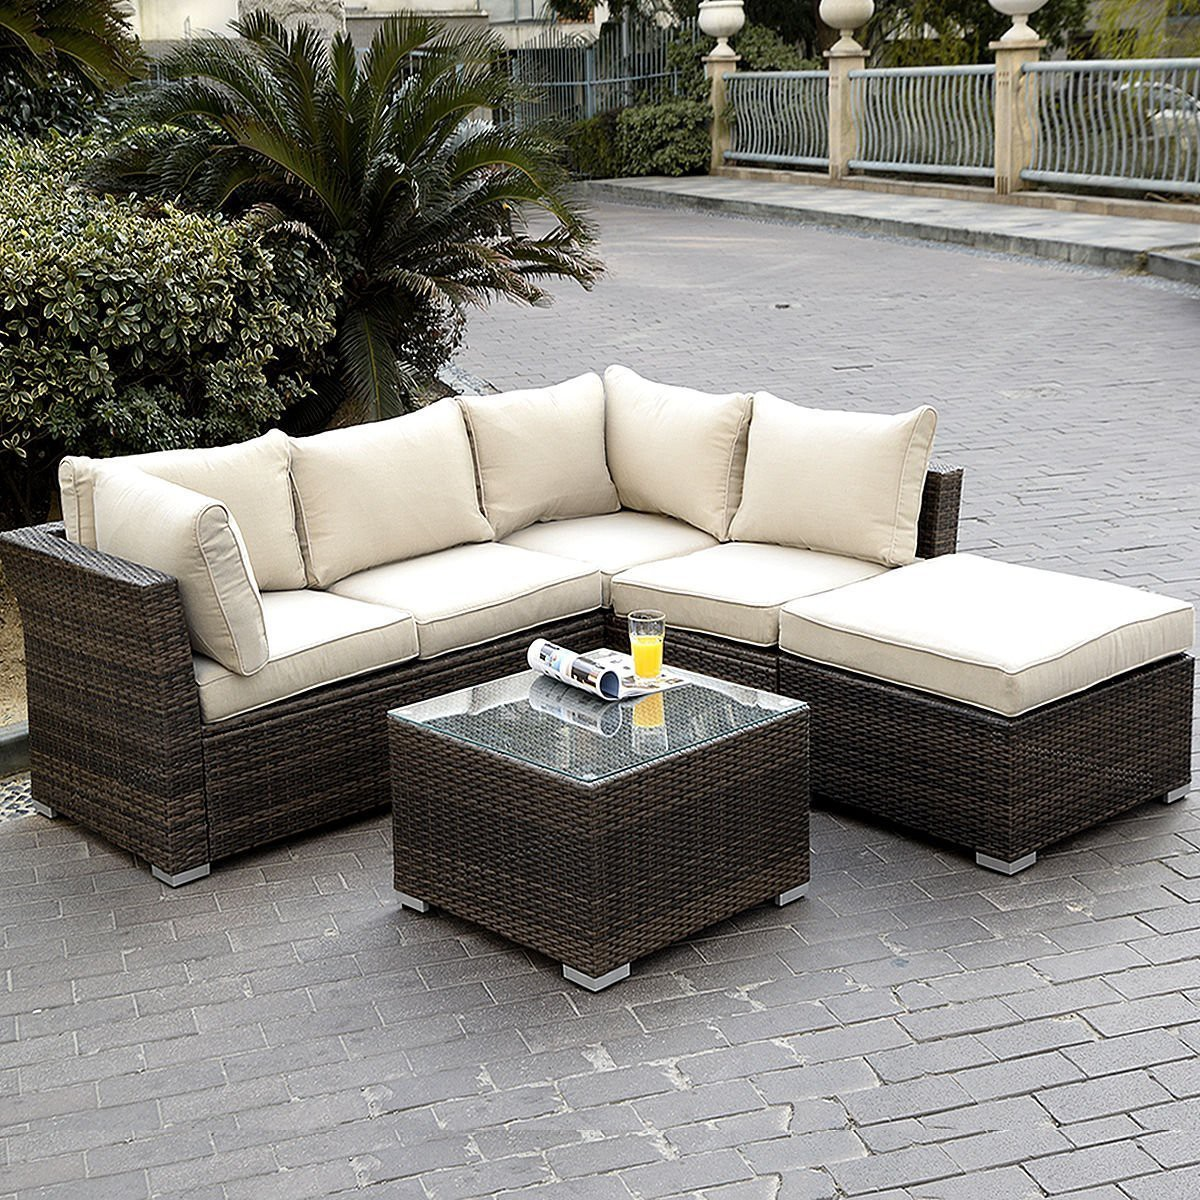 Giantex 4pc wicker rattan outdoor sectional sofa set for Outdoor patio couch set